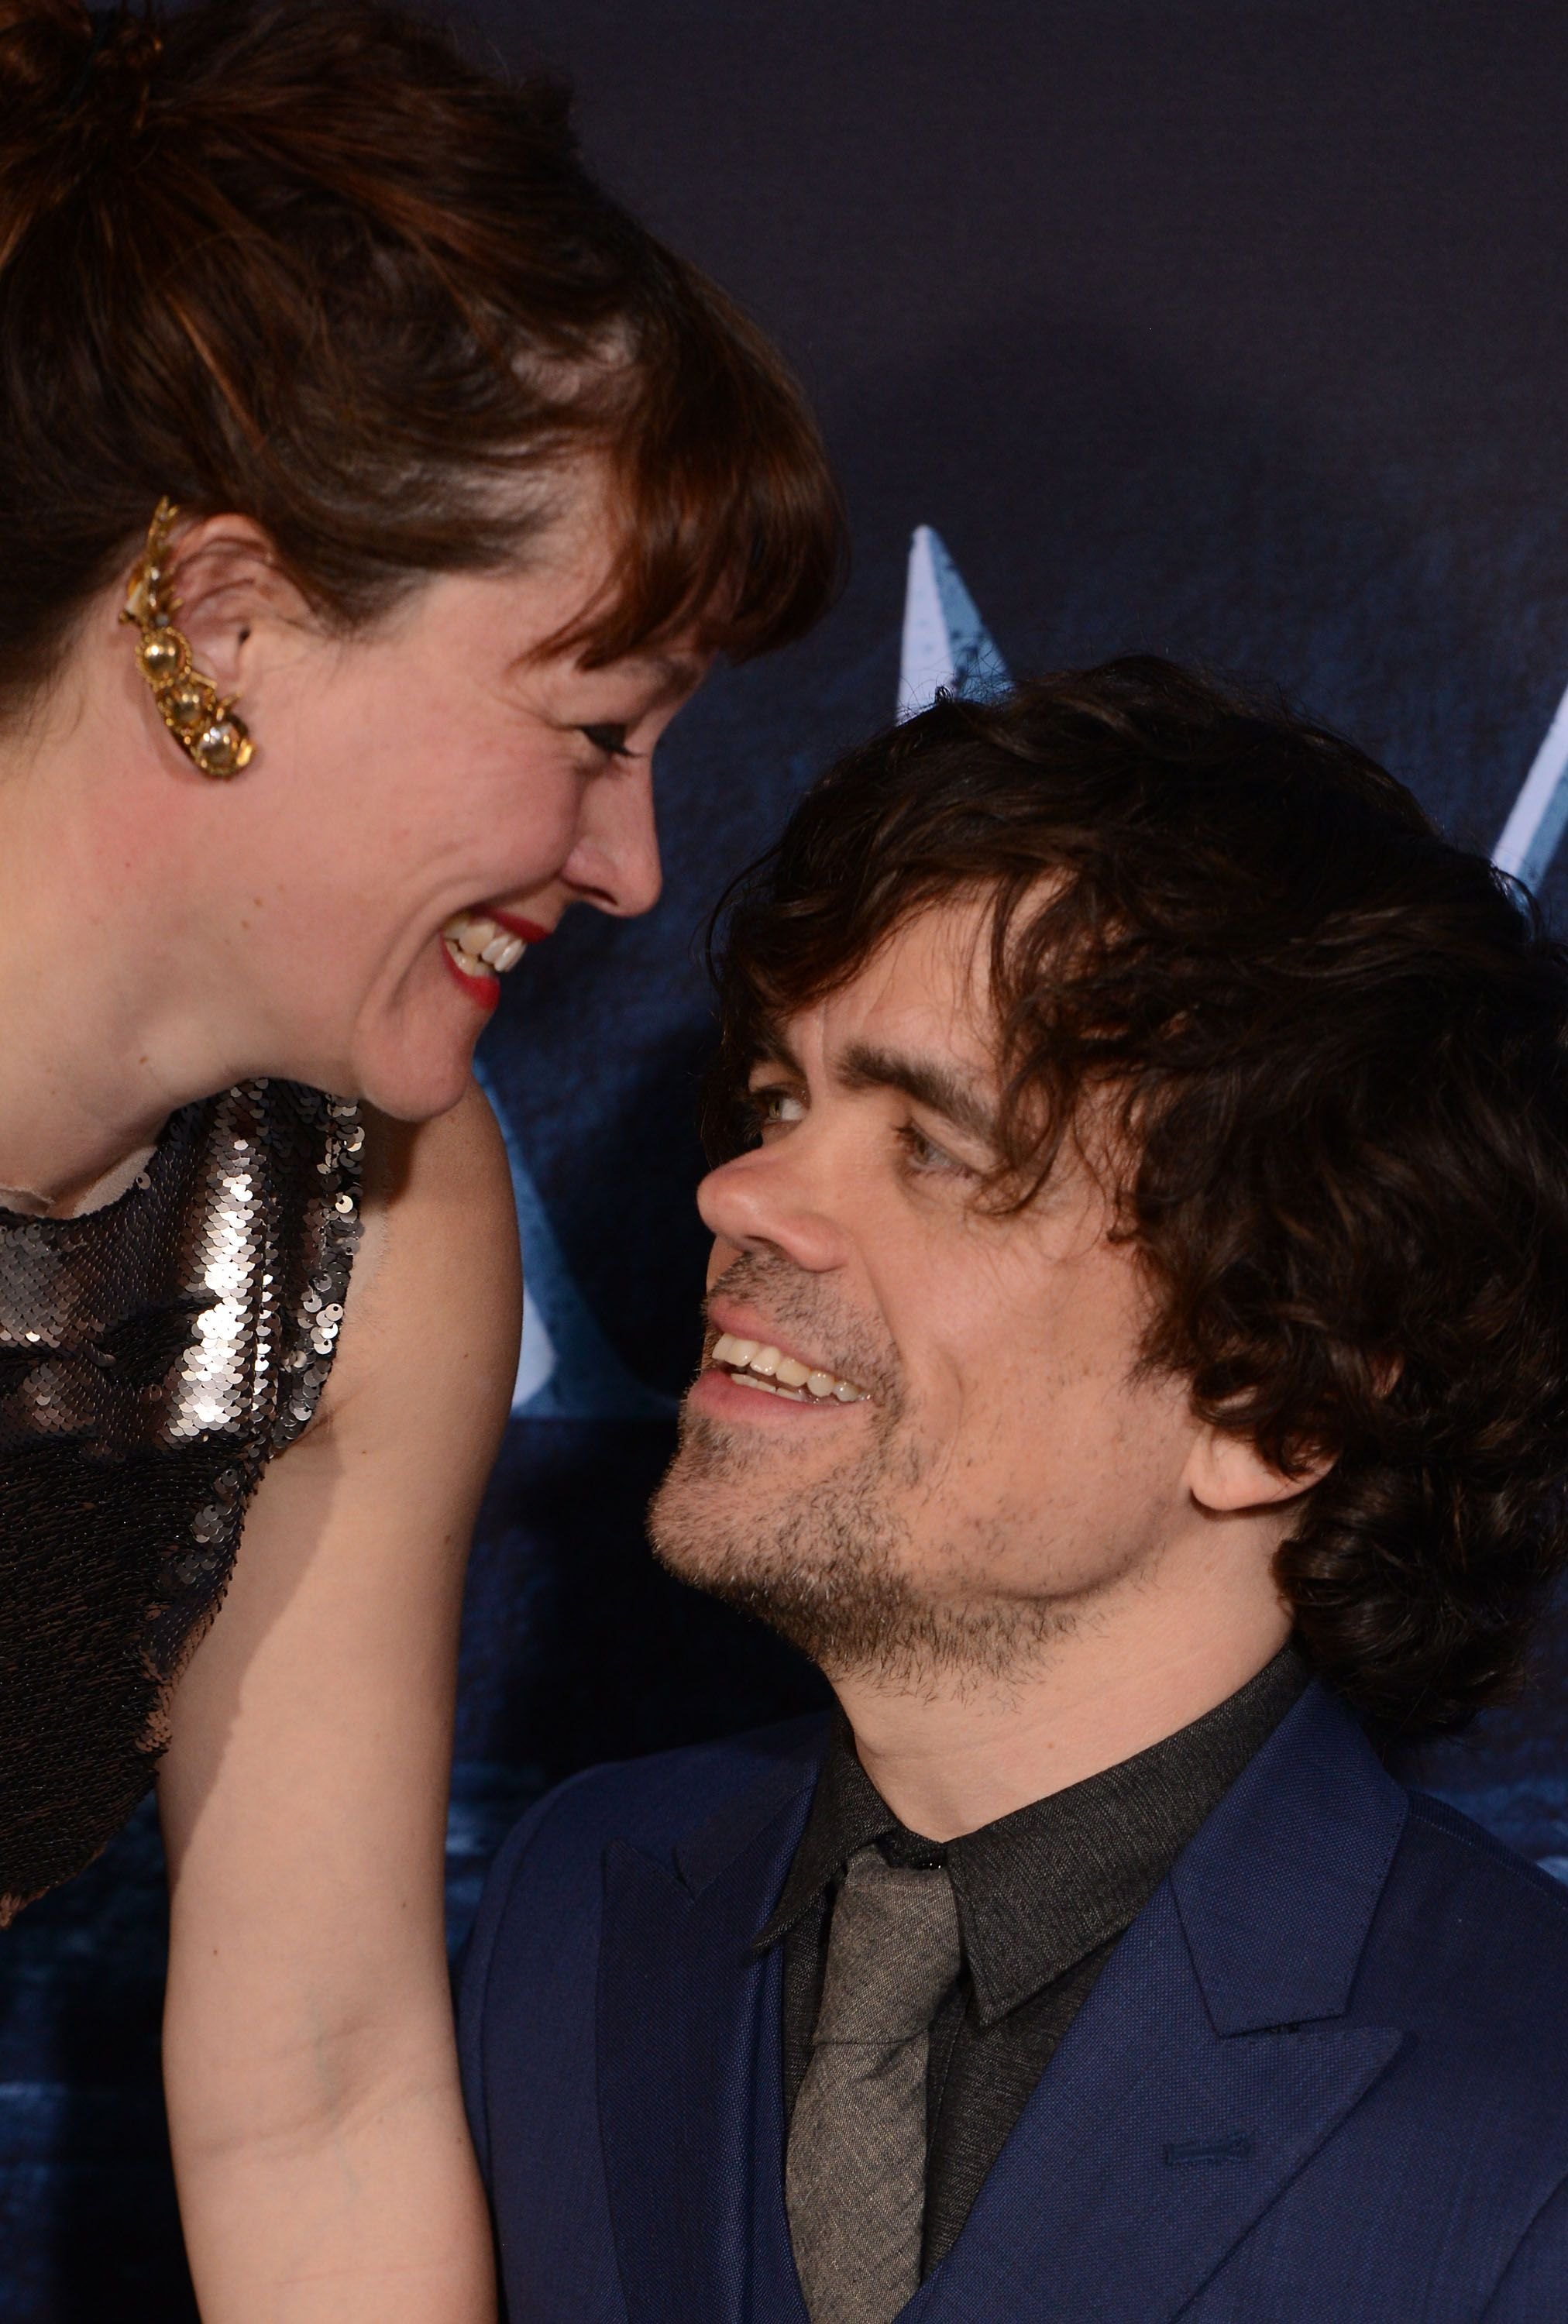 Peter Dinklage and Erica Schmidt at the premiere of HBO's 'Game Of Thrones' Season 6 in 2016 in Hollywood, California   Source: Getty Images